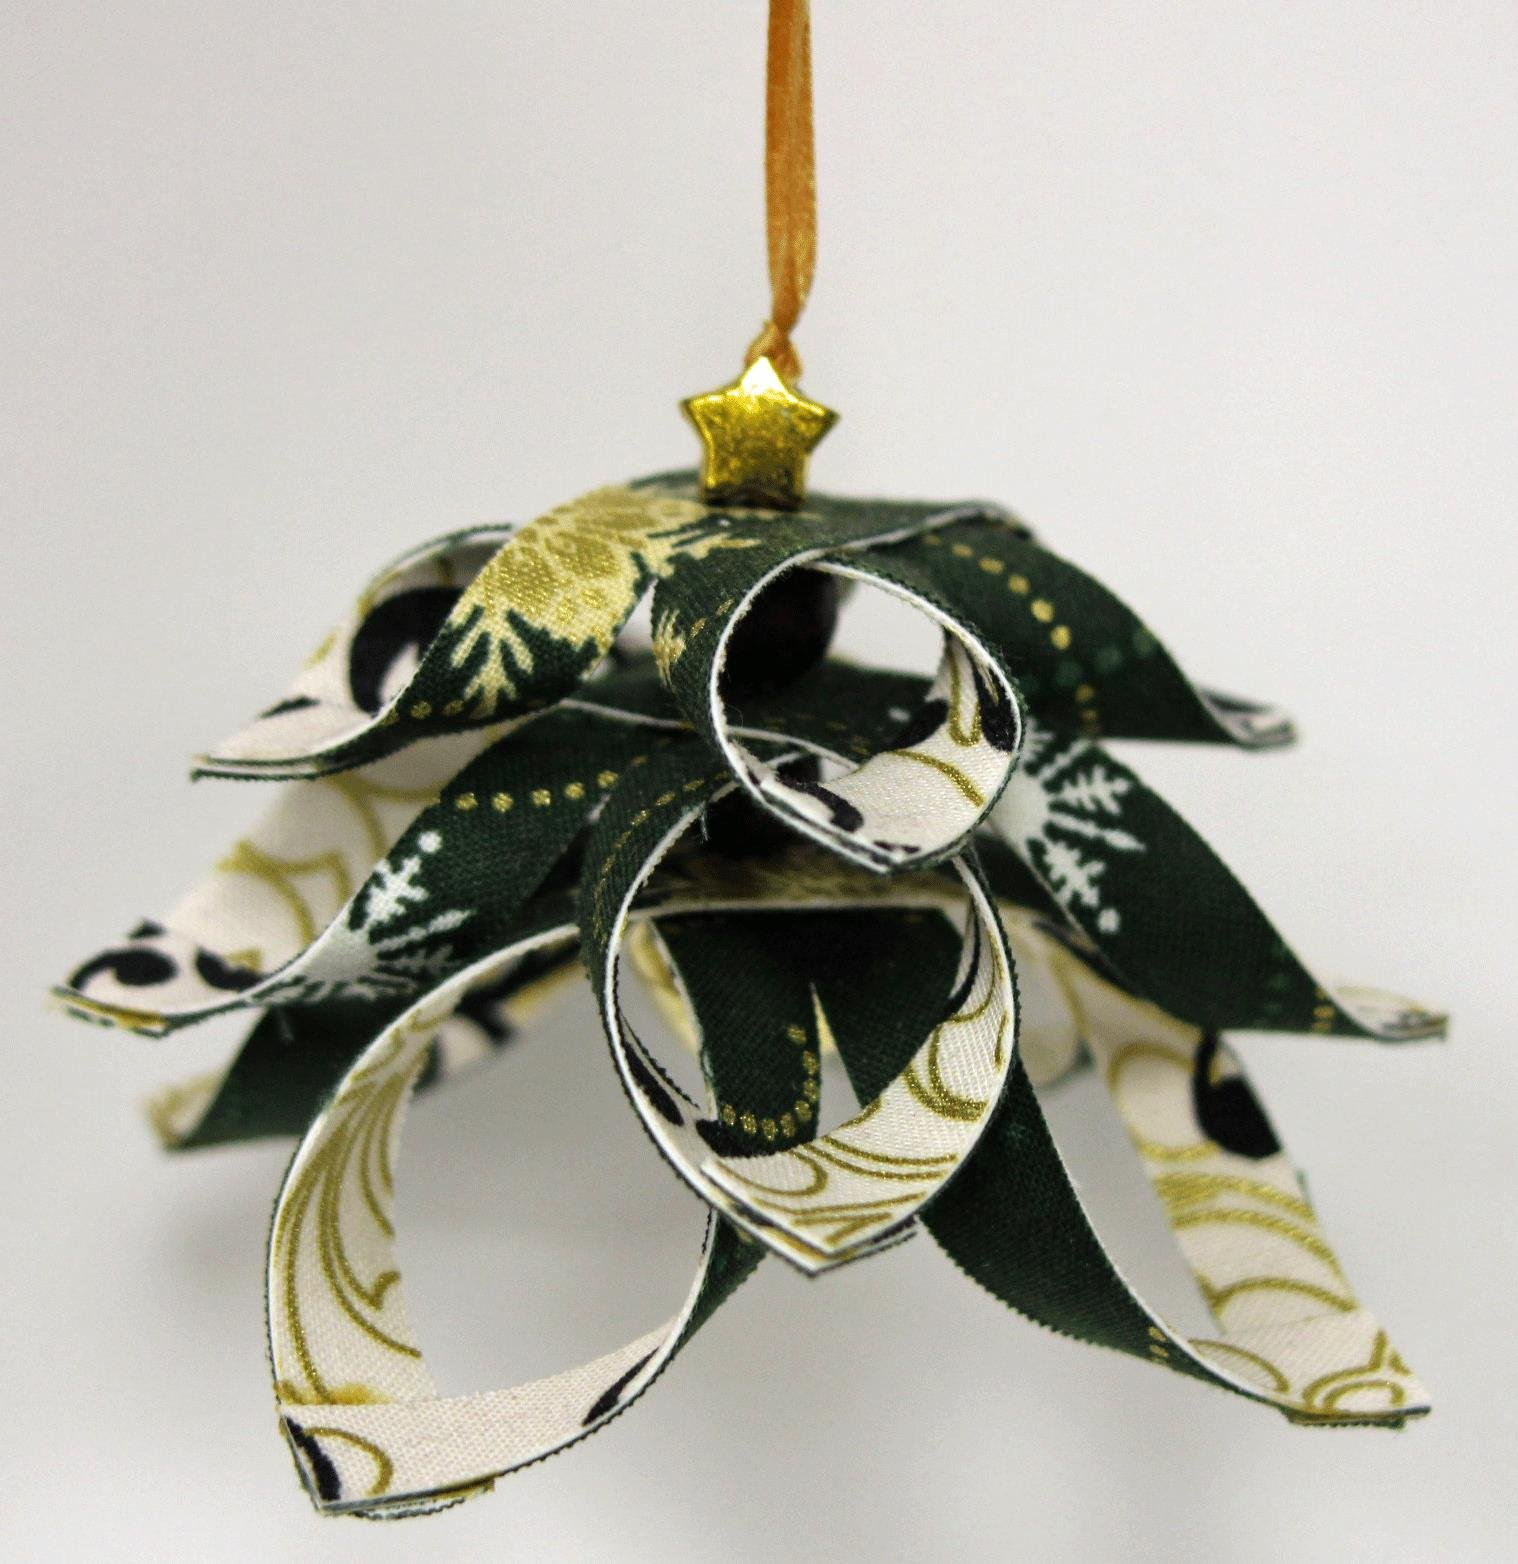 Jingle Tree Ornament Kit